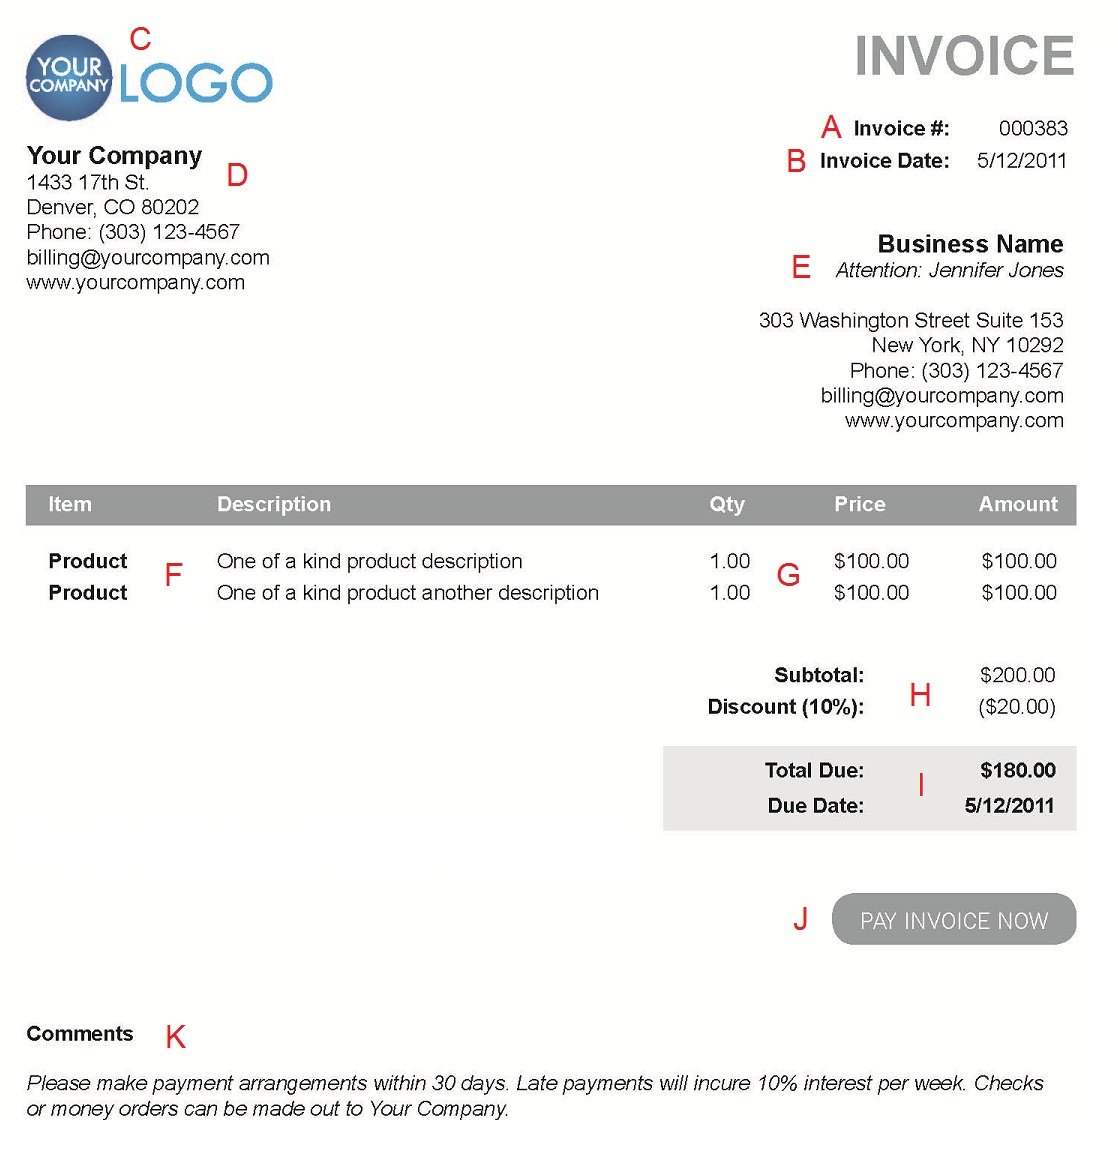 Floobydustus  Marvelous The  Different Sections Of An Electronic Payment Invoice With Engaging A  With Breathtaking How To Invoice Paypal Also Fedex Ground Commercial Invoice In Addition Invoice Price For Mazda Cx And Pod Invoice As Well As Request Invoice Additionally Inventory And Invoicing Software From Paysimplecom With Floobydustus  Engaging The  Different Sections Of An Electronic Payment Invoice With Breathtaking A  And Marvelous How To Invoice Paypal Also Fedex Ground Commercial Invoice In Addition Invoice Price For Mazda Cx From Paysimplecom